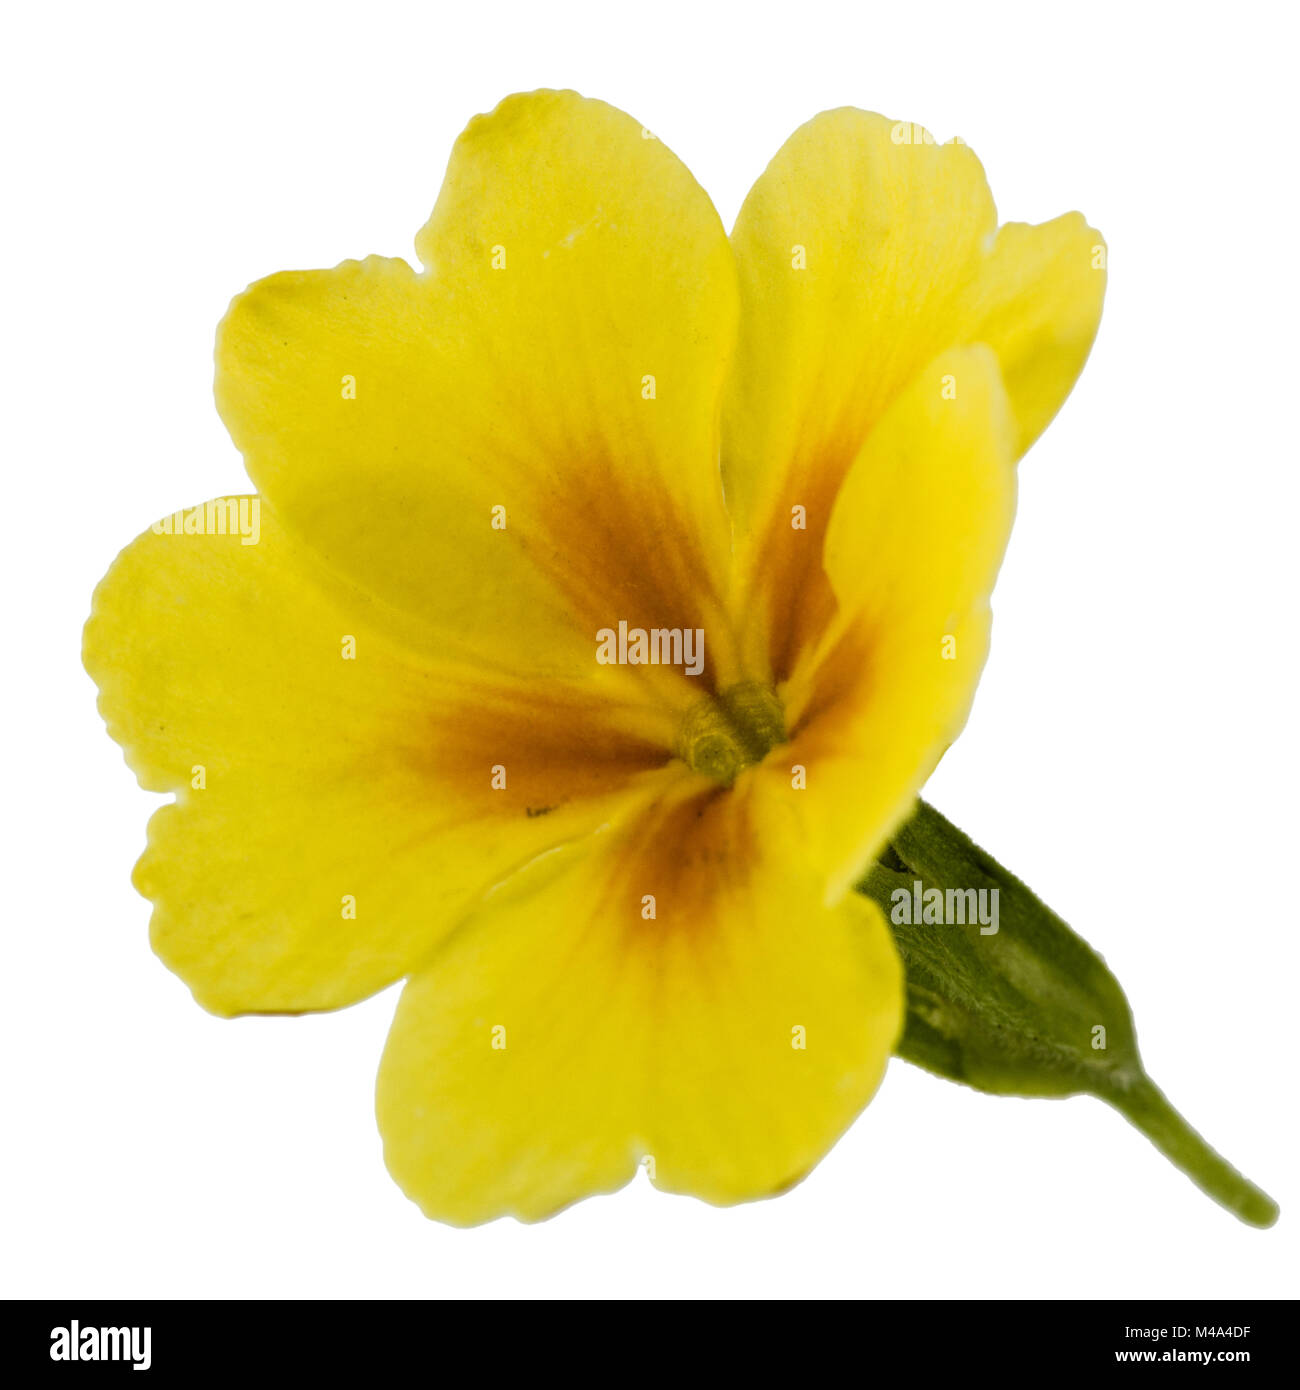 Flower of yellow primrose isolated on white background stock photo flower of yellow primrose isolated on white background mightylinksfo